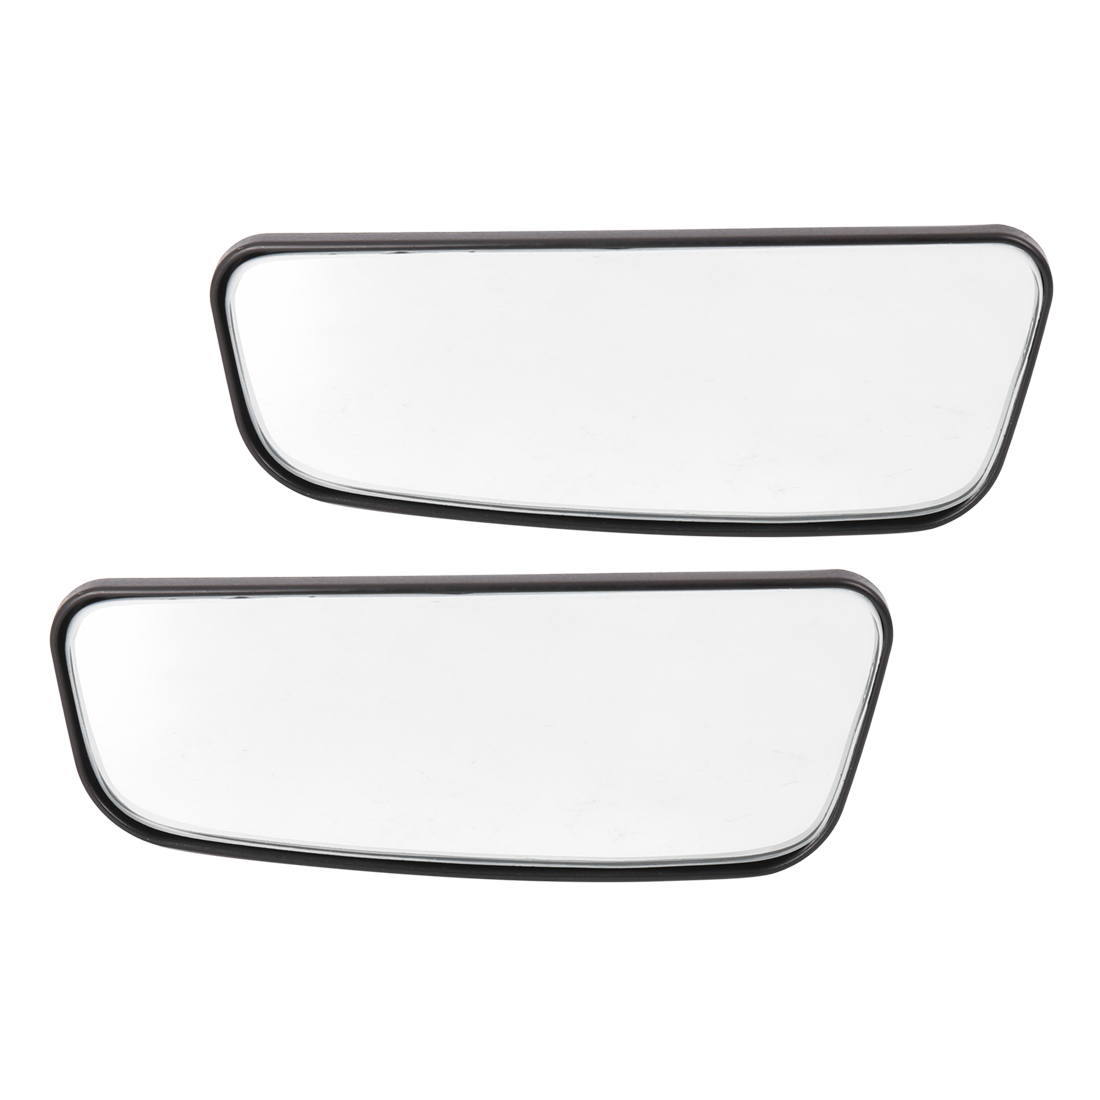 Pair Universal Self Adhesive Wide Angle Blind Spot Side Rearview Mirror for Car